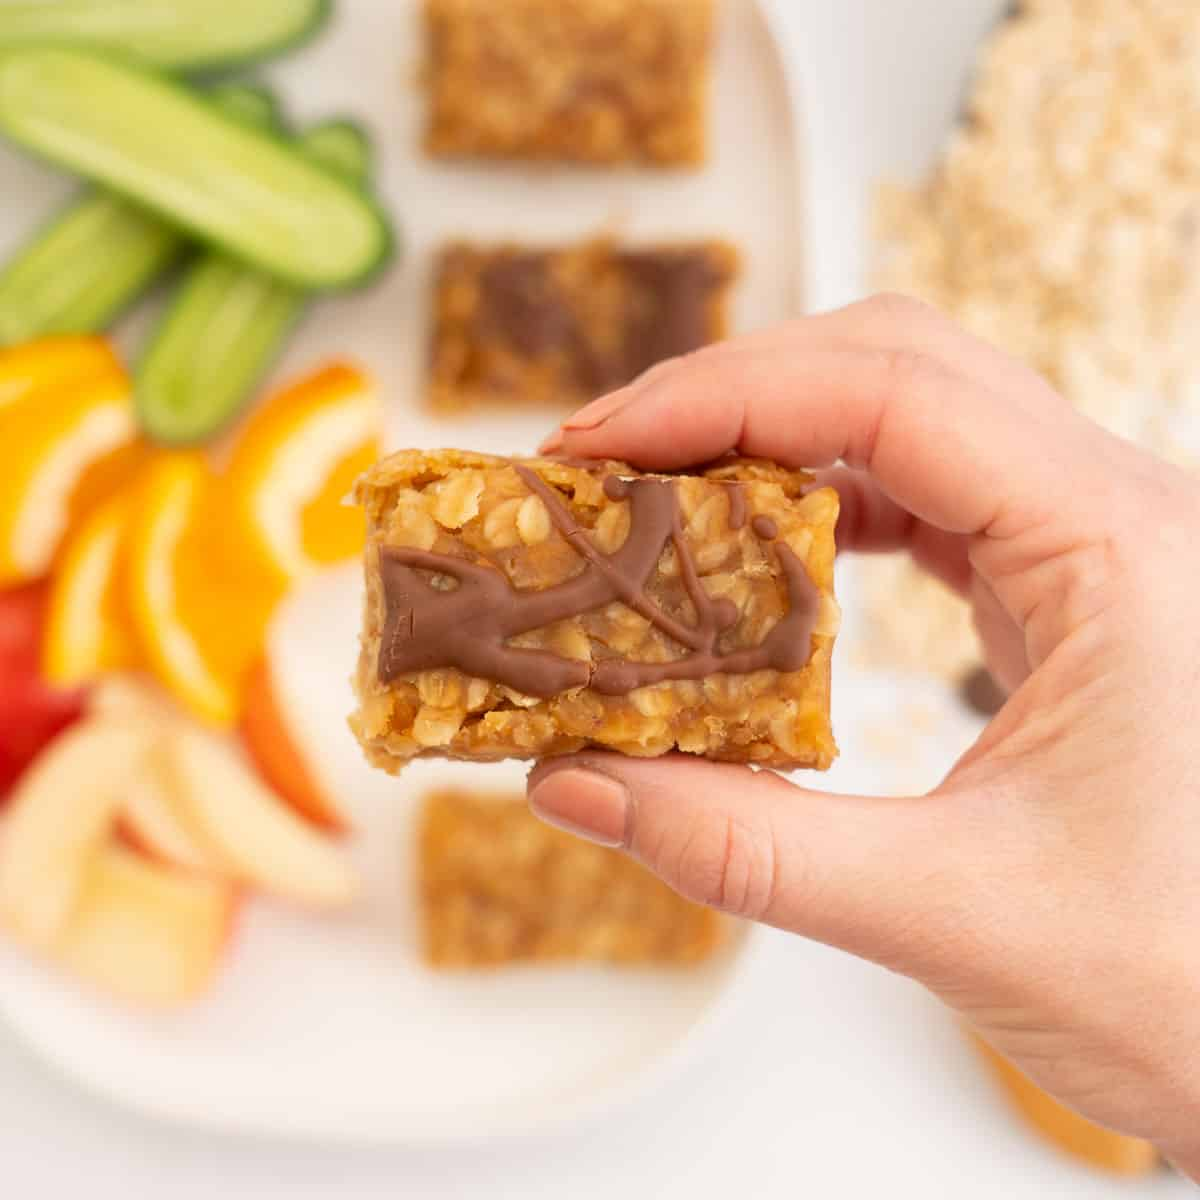 A woman's hand holding a peanut oat bar decorated with chocolate drizzle above platter of cut fruit.